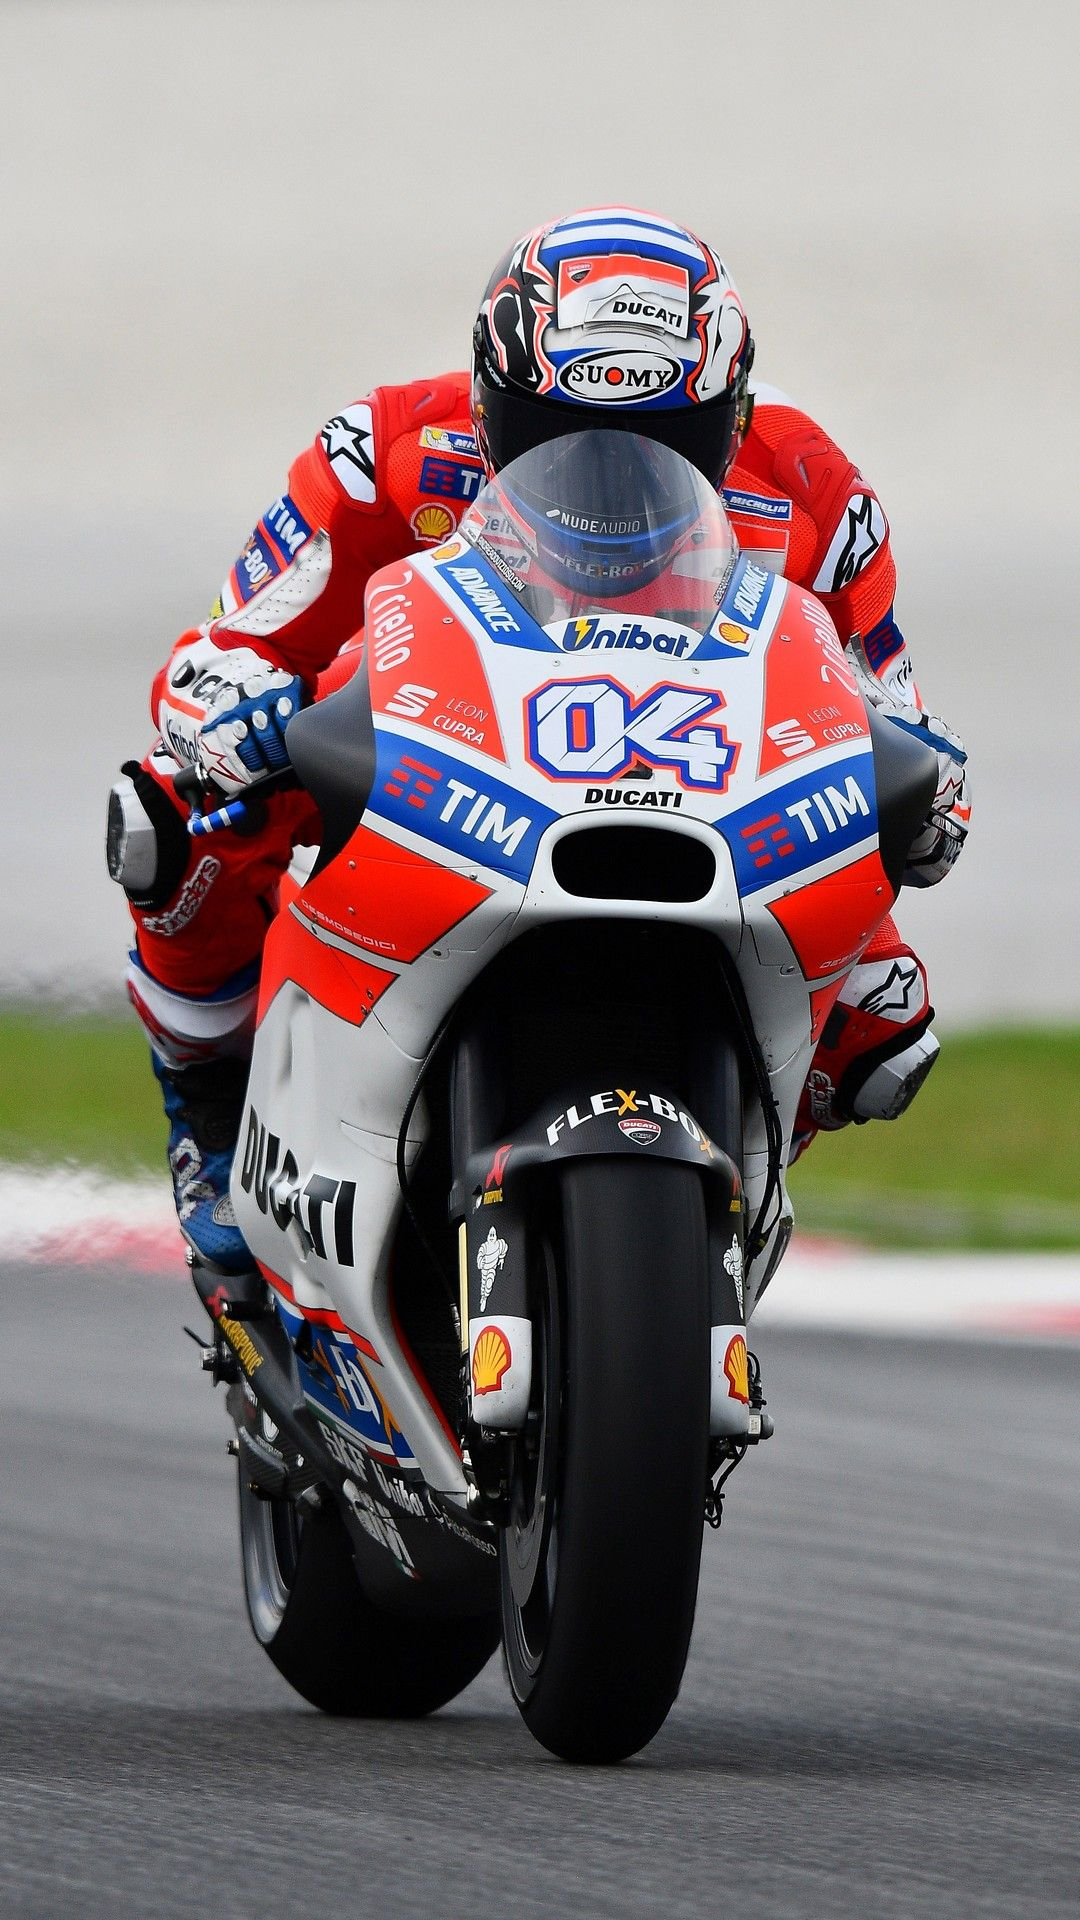 Andrea Dovizioso Android Wallpaper iPhoneWallpapers Iphone 1080x1920